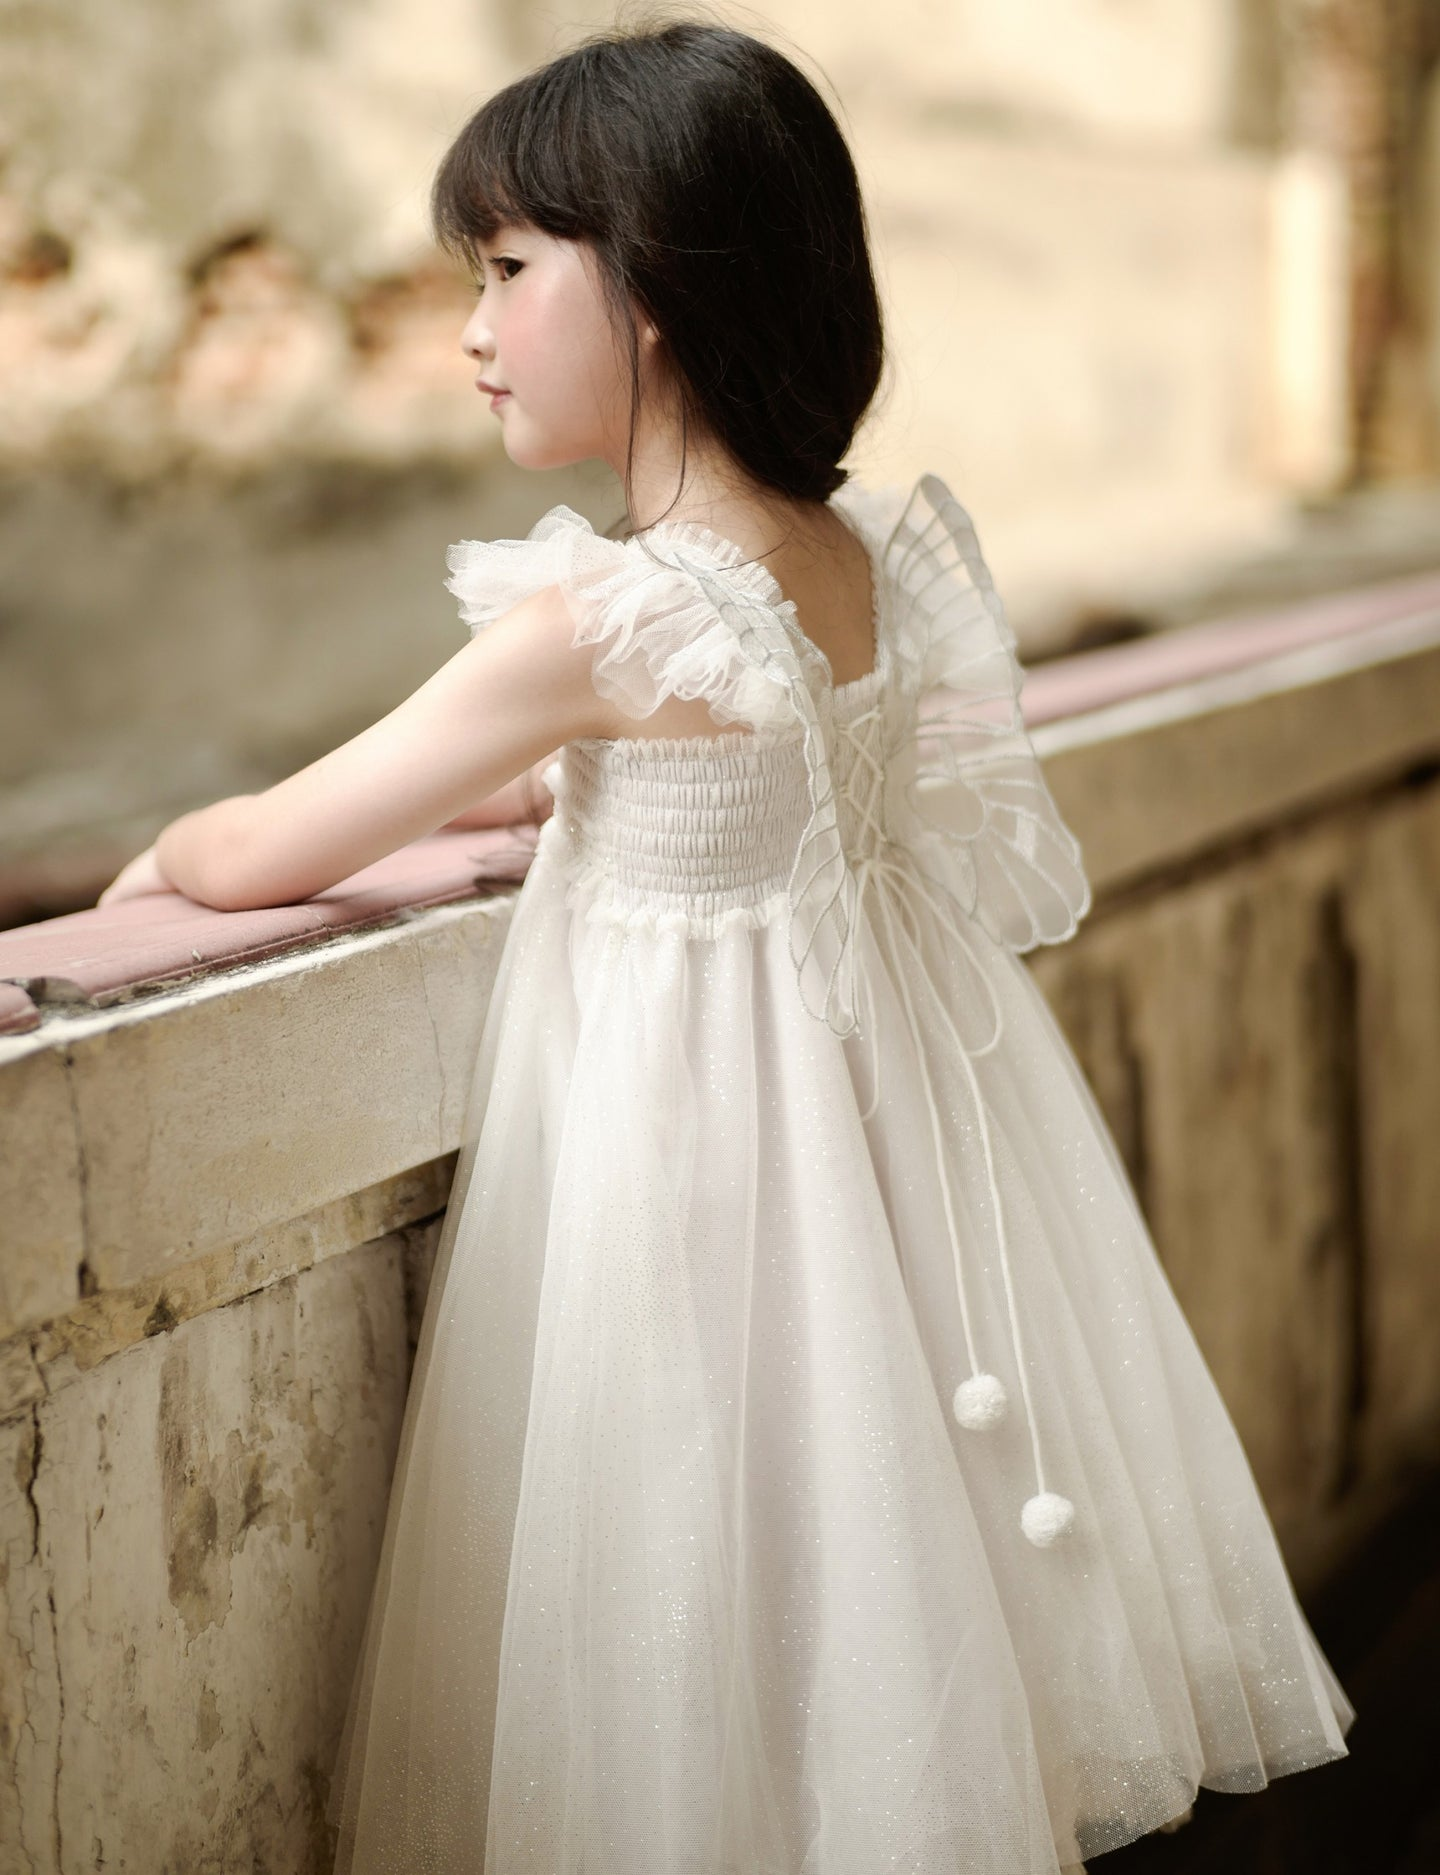 Luna Luna - Dream Fairy Infant Dress